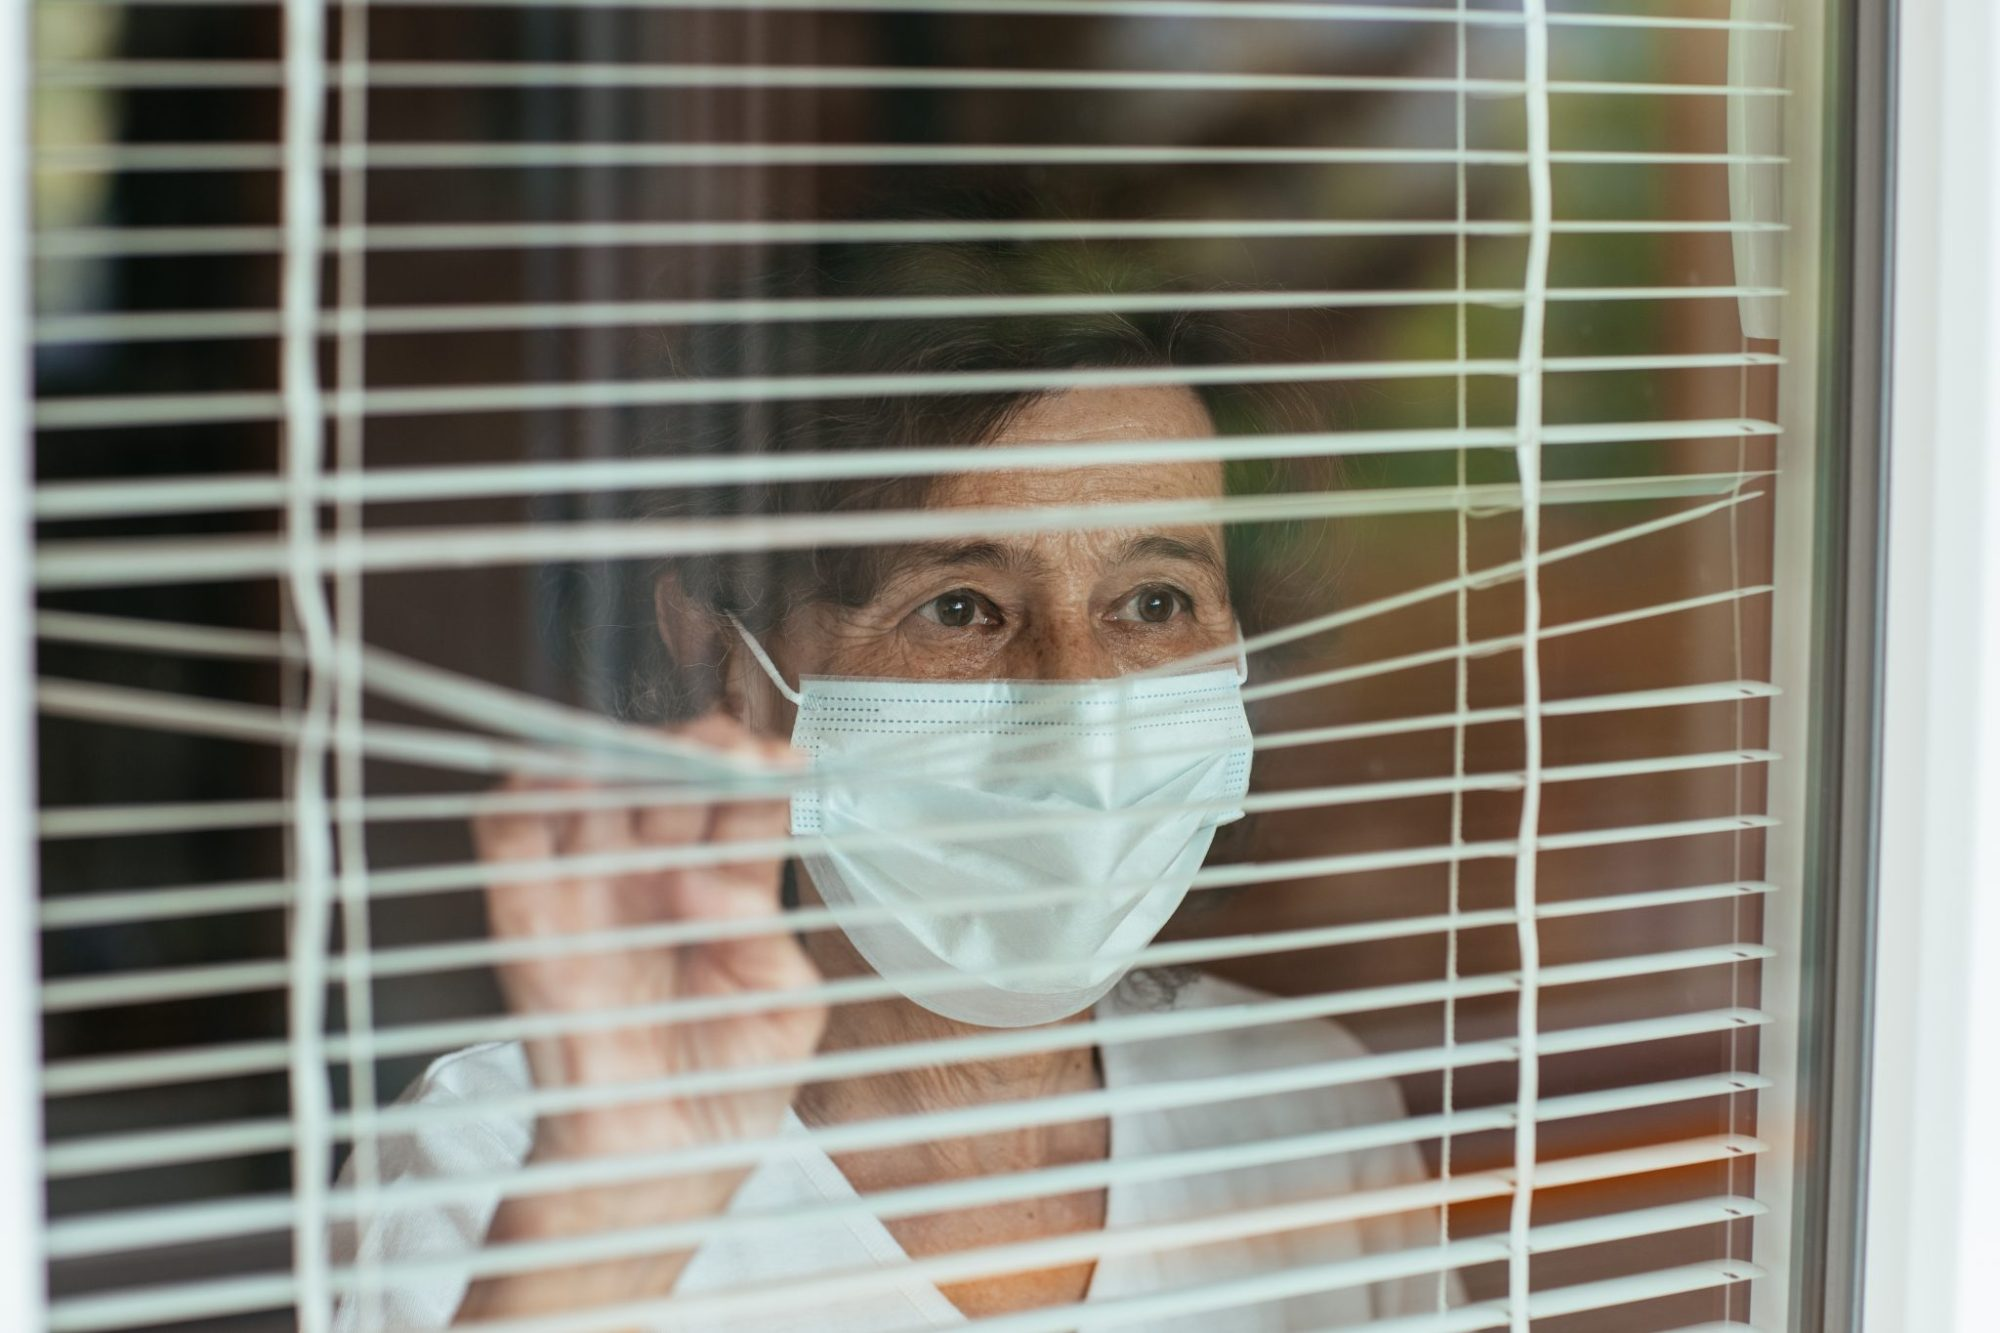 an older woman wearing a face mask, standing at a window and peering out through the blinds